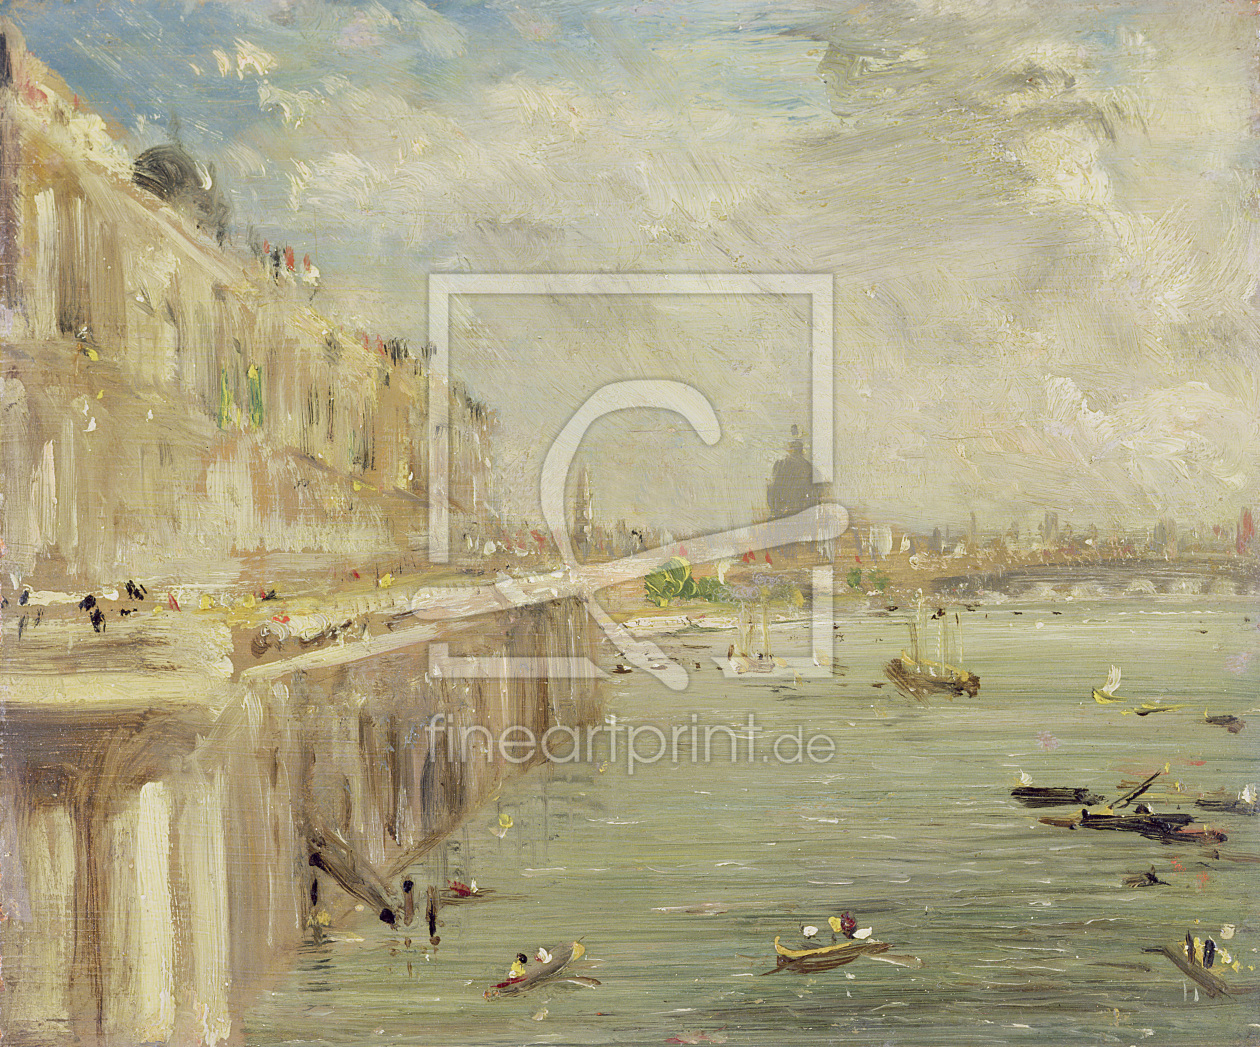 Bild-Nr.: 31000242 View of Somerset House Terrace and St. Paul's, from the North end of Waterloo Br erstellt von Constable, John